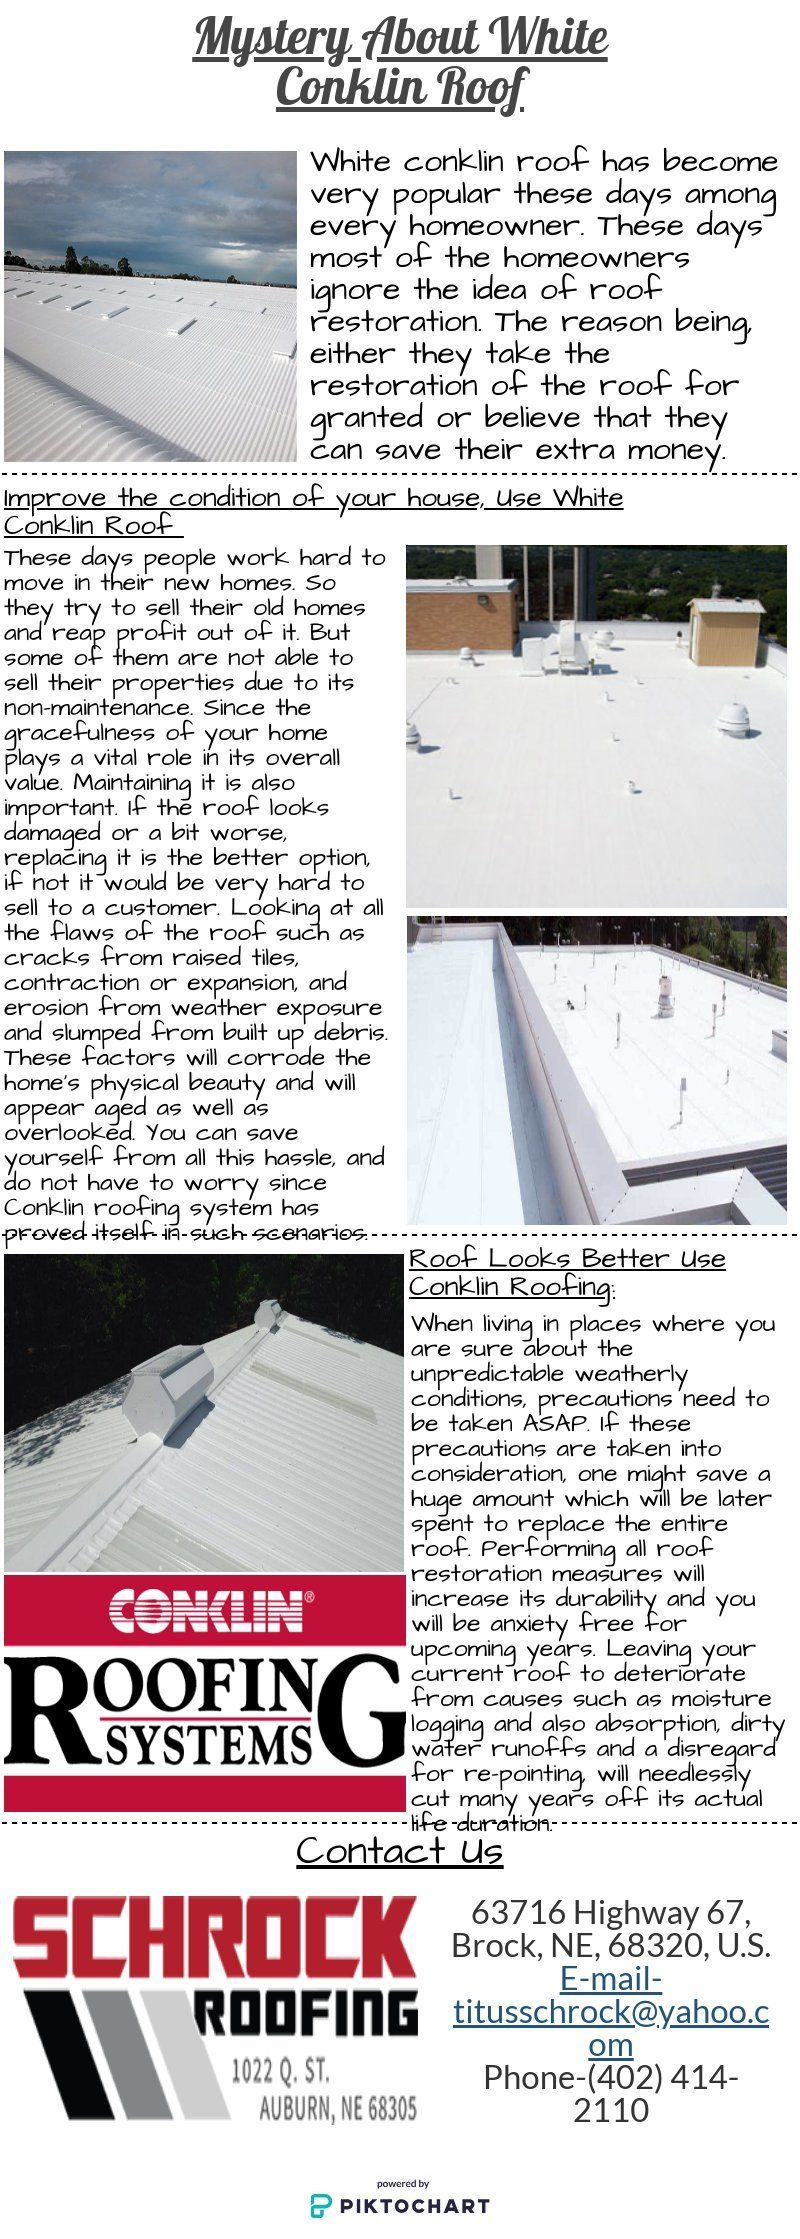 When Living In Places Where You Are Sure About The Unpredictable Weather Conditions Precautions Need To Be Take Commercial Roofing Roofing Rubber Roof Coating